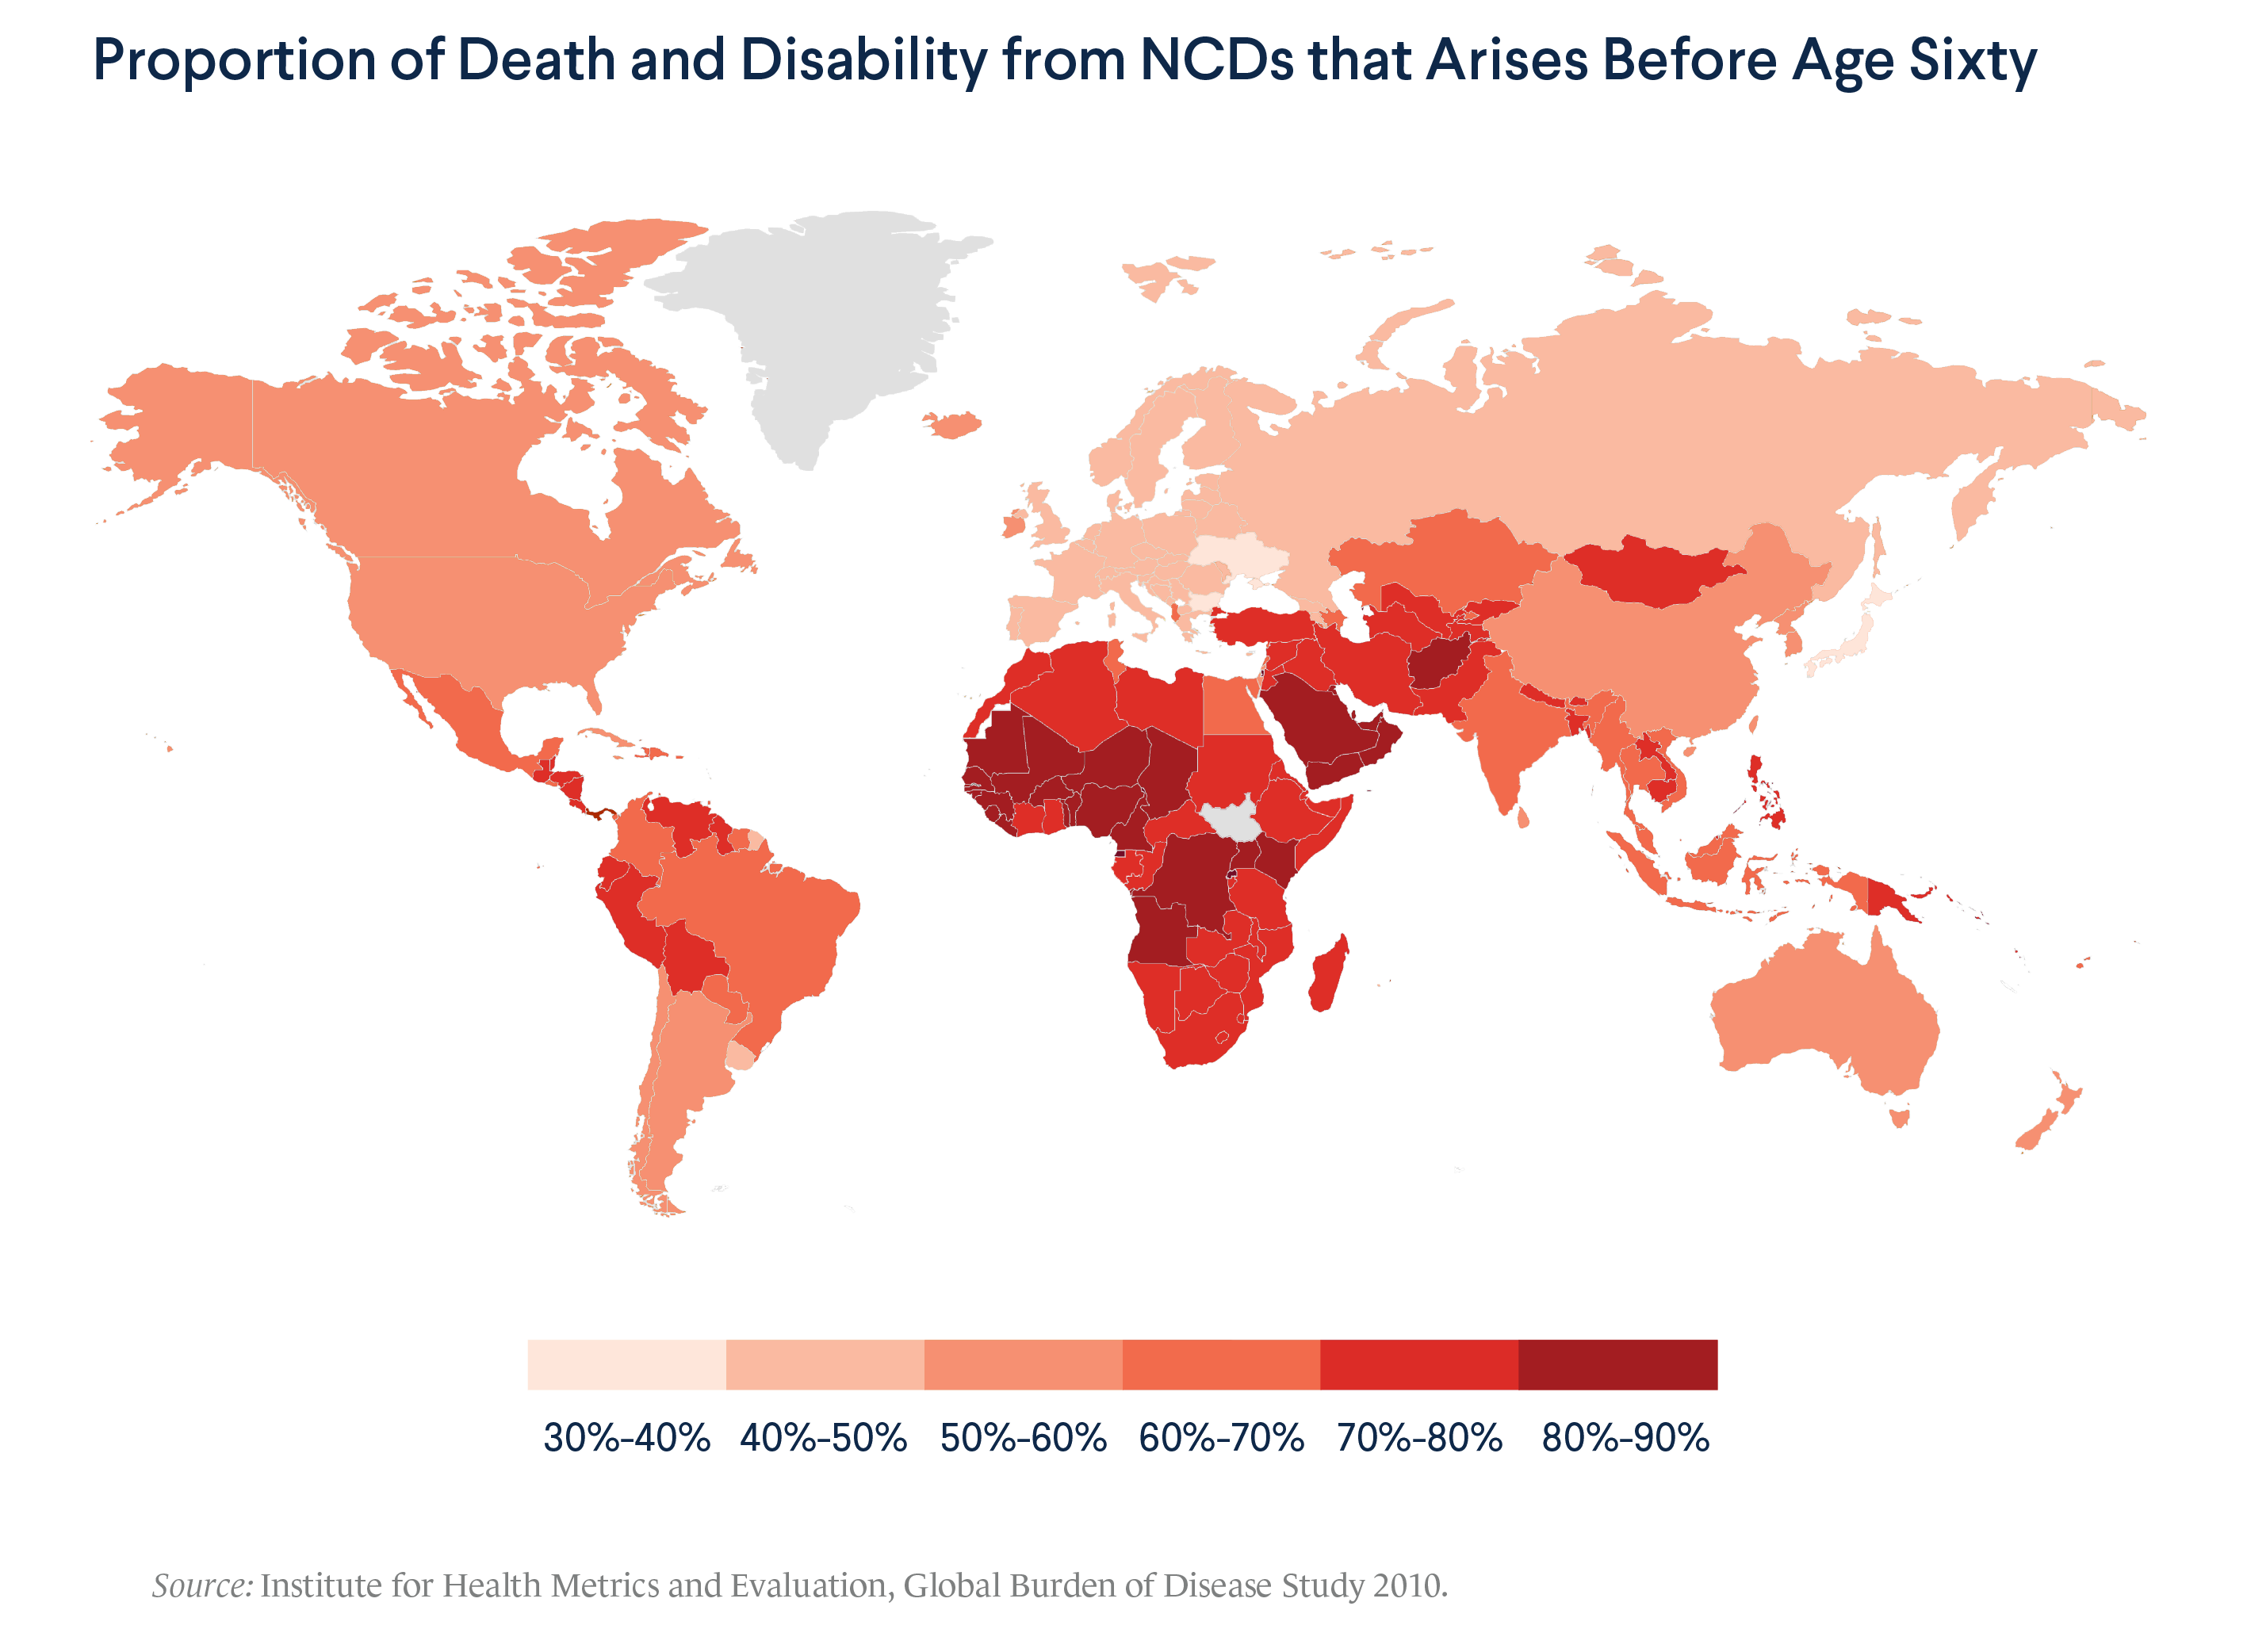 Proportion of Death and Disability From NCDs that Arises Before Age Sixty